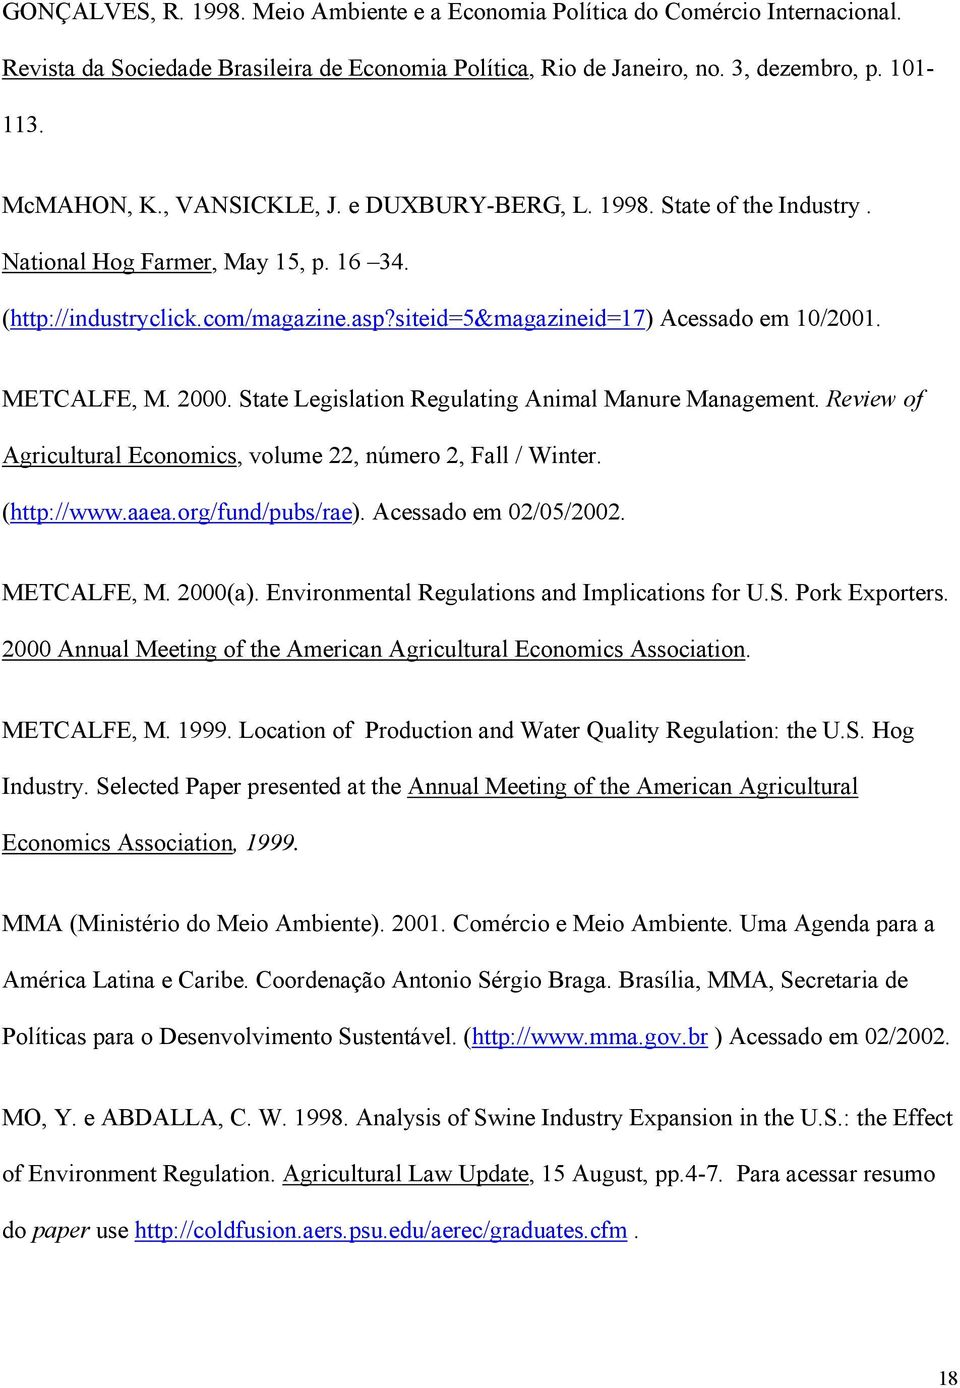 2000. State Legislation Regulating Animal Manure Management. Review of Agricultural Economics, volume 22, número 2, Fall / Winter. (http://www.aaea.org/fund/pubs/rae). Acessado em 02/05/2002.